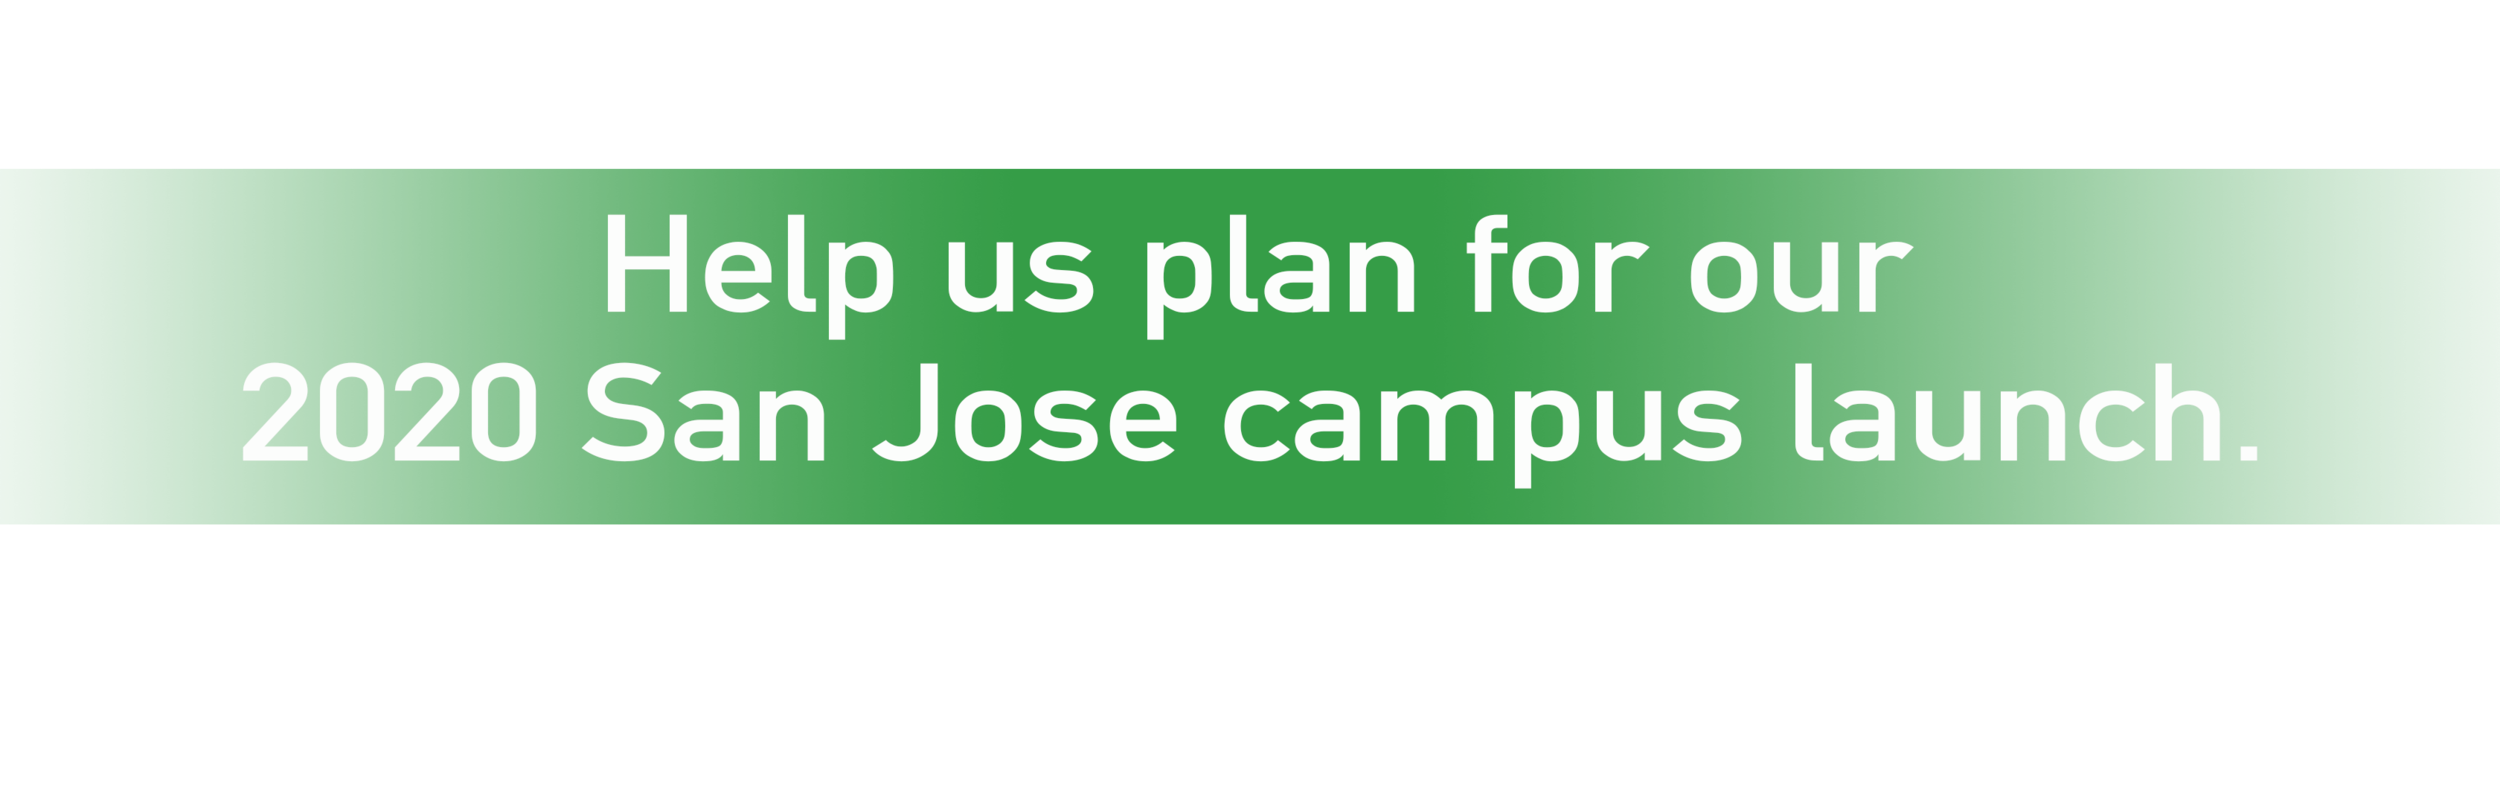 CampusLaunchSurvey_HomePg_Text.png